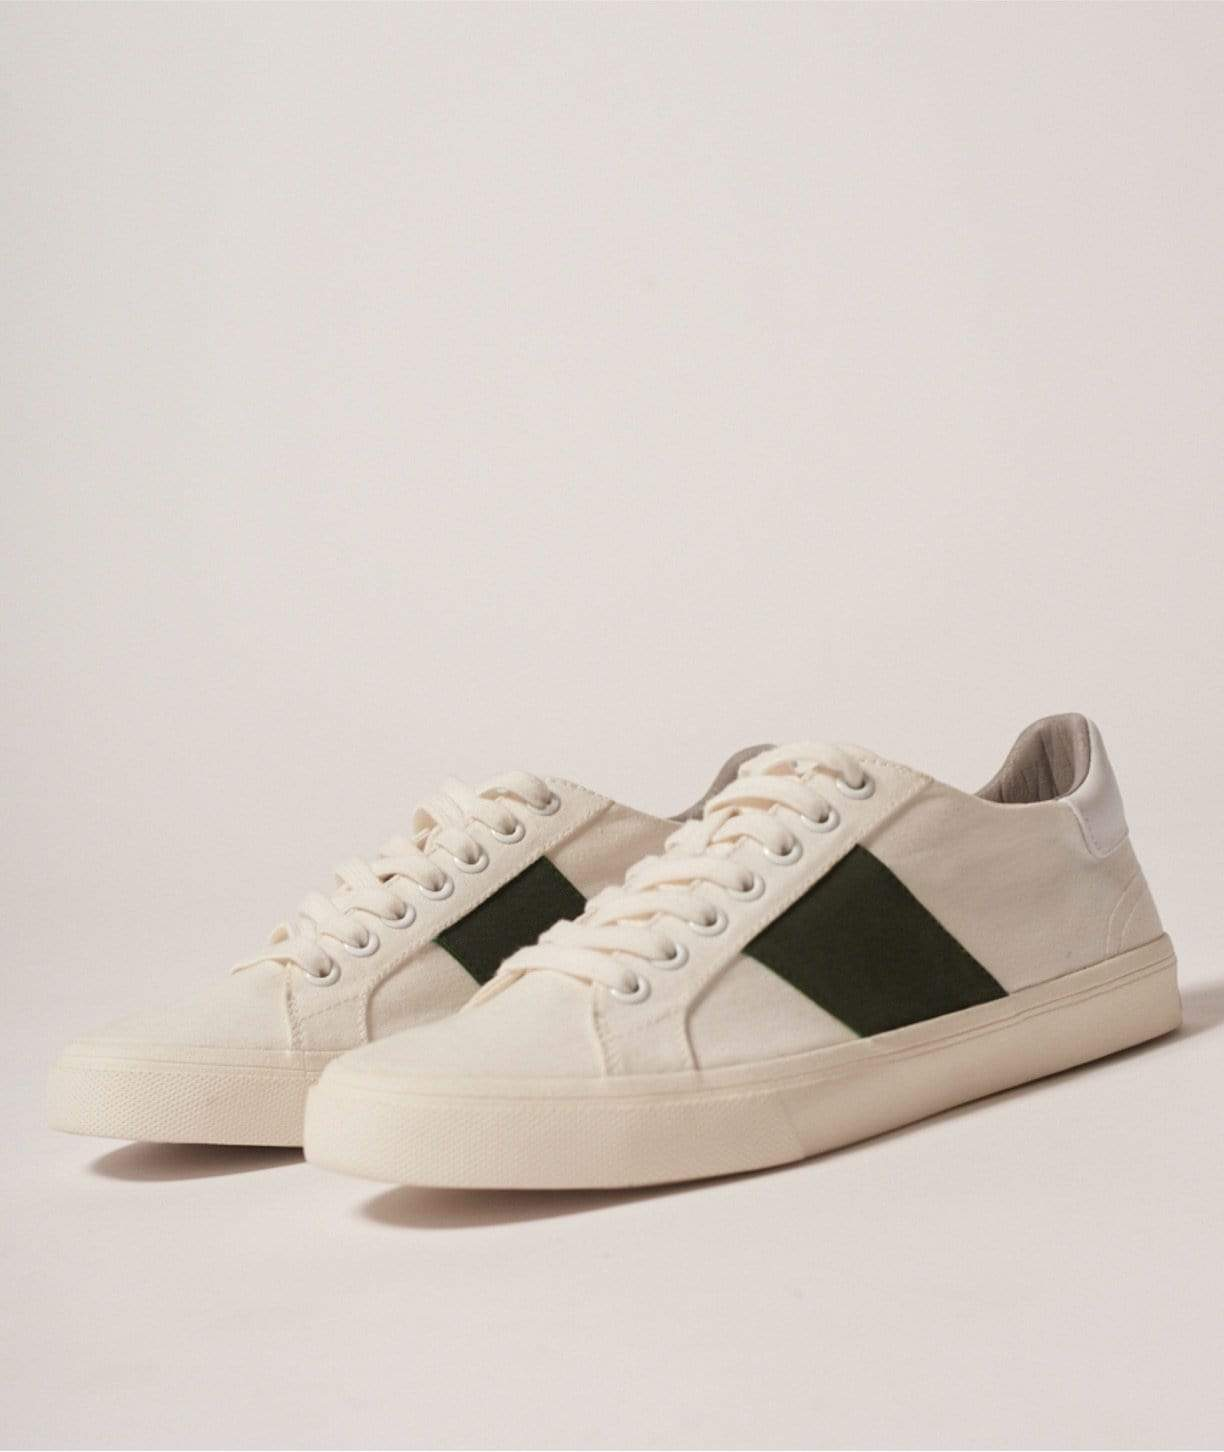 Elliott Climate Positive Recycled Canvas Trainer | White/Green